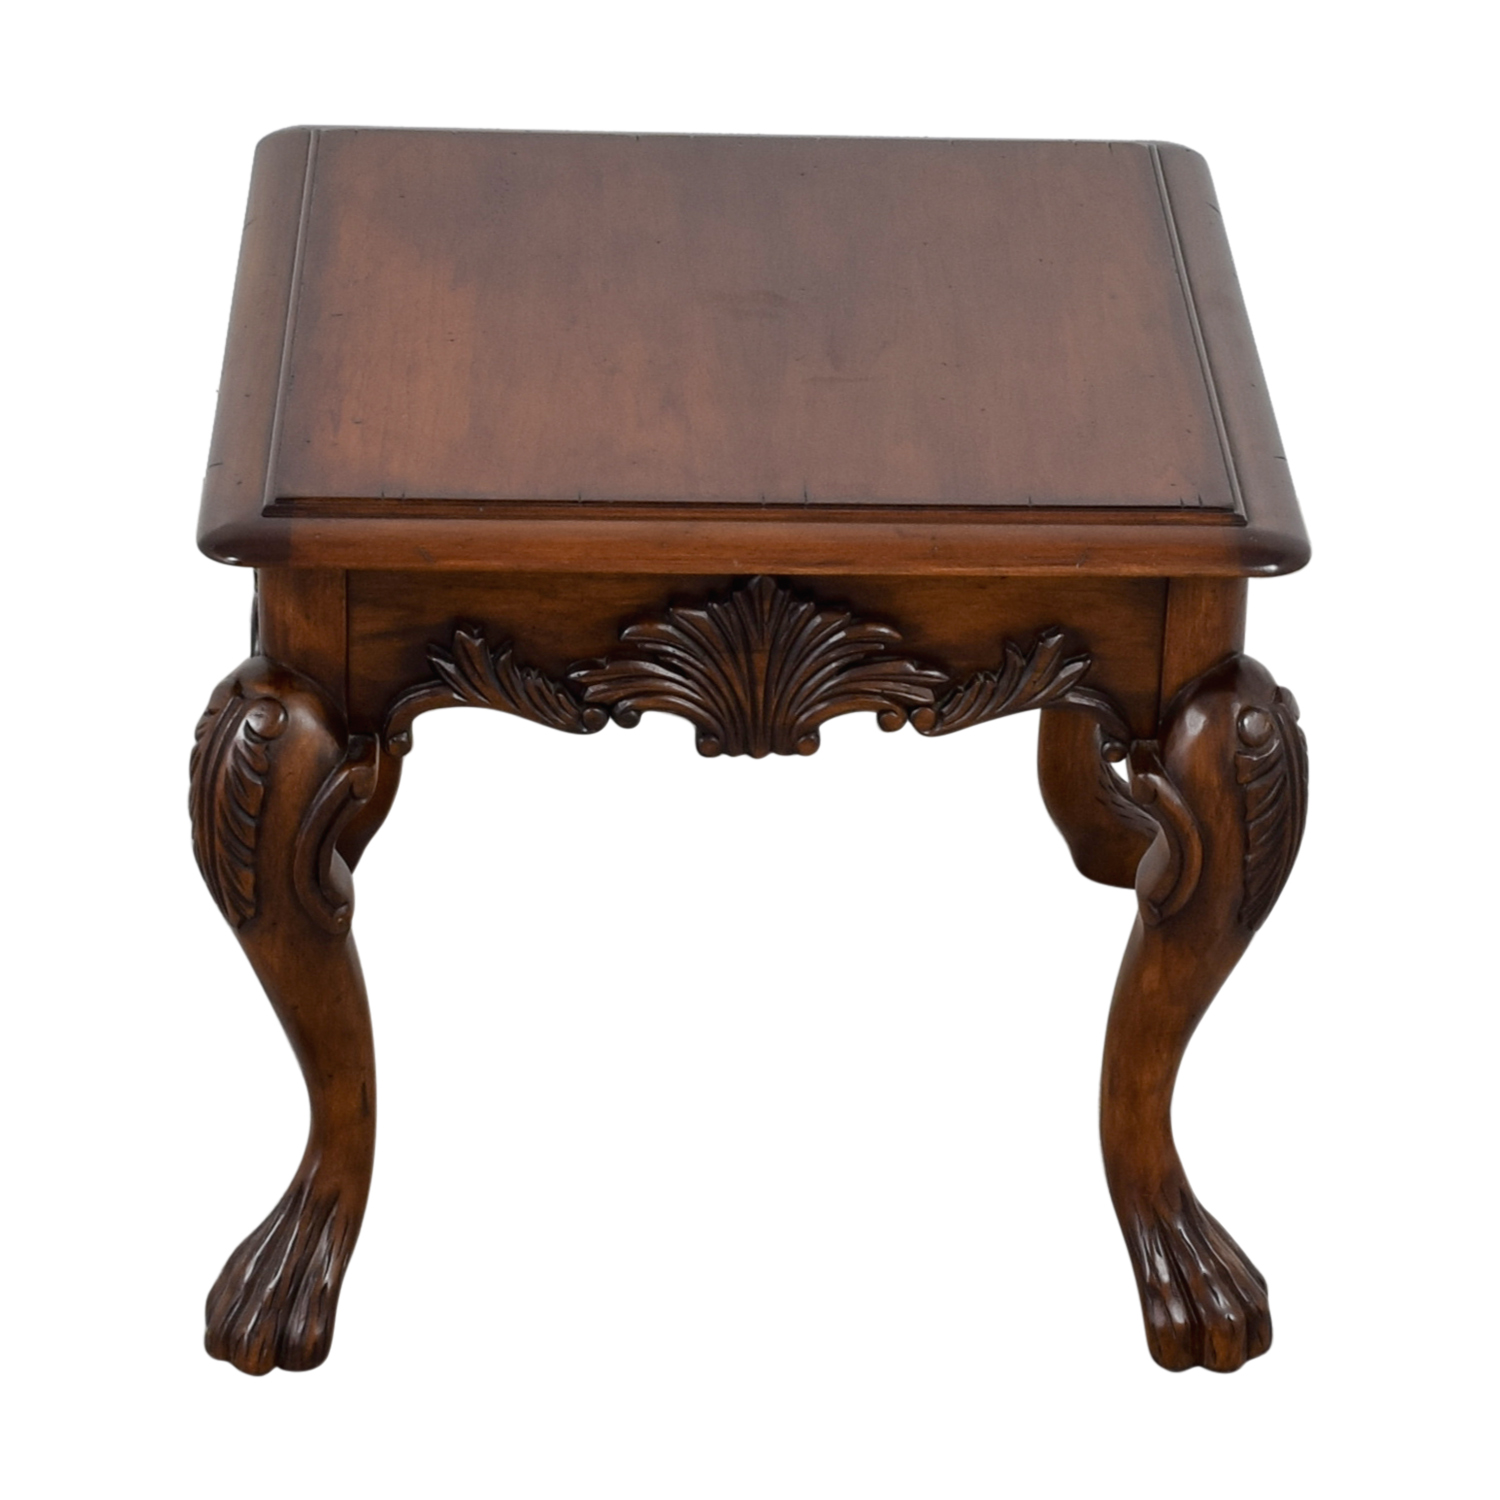 buy Carved Wood End Table online